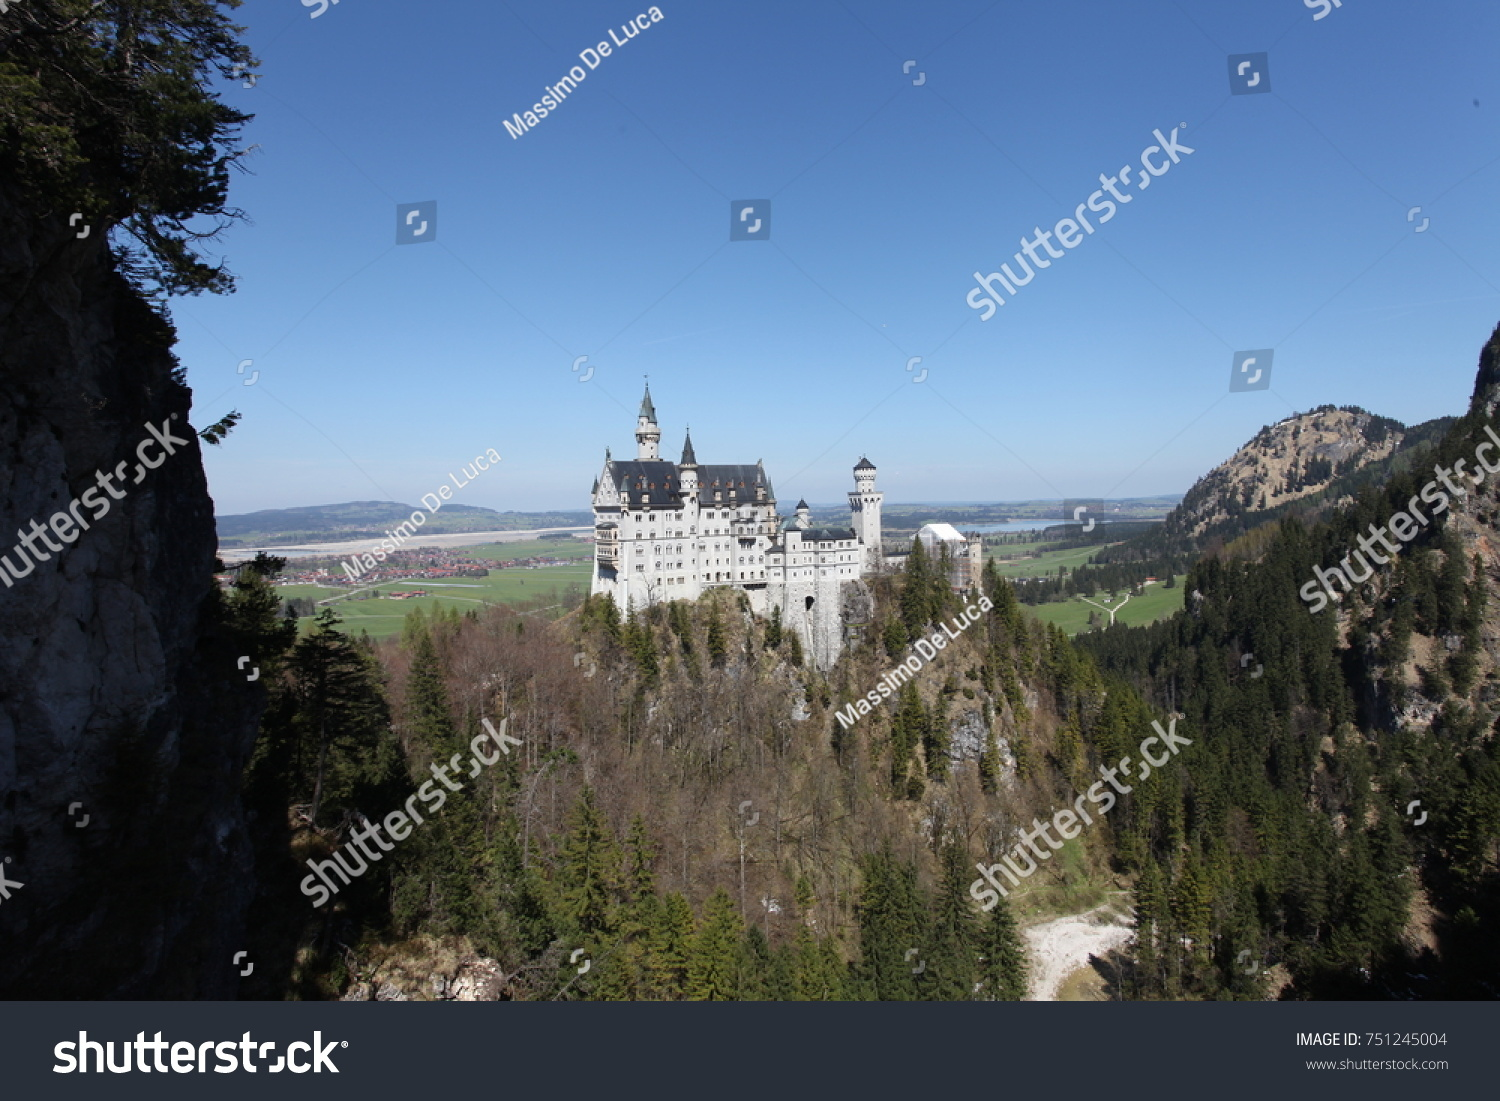 Schloss neuschwanstein castle dreams itis one stock photo schloss neuschwanstein castle of dreams itis one of the symbols of bavaria biocorpaavc Choice Image